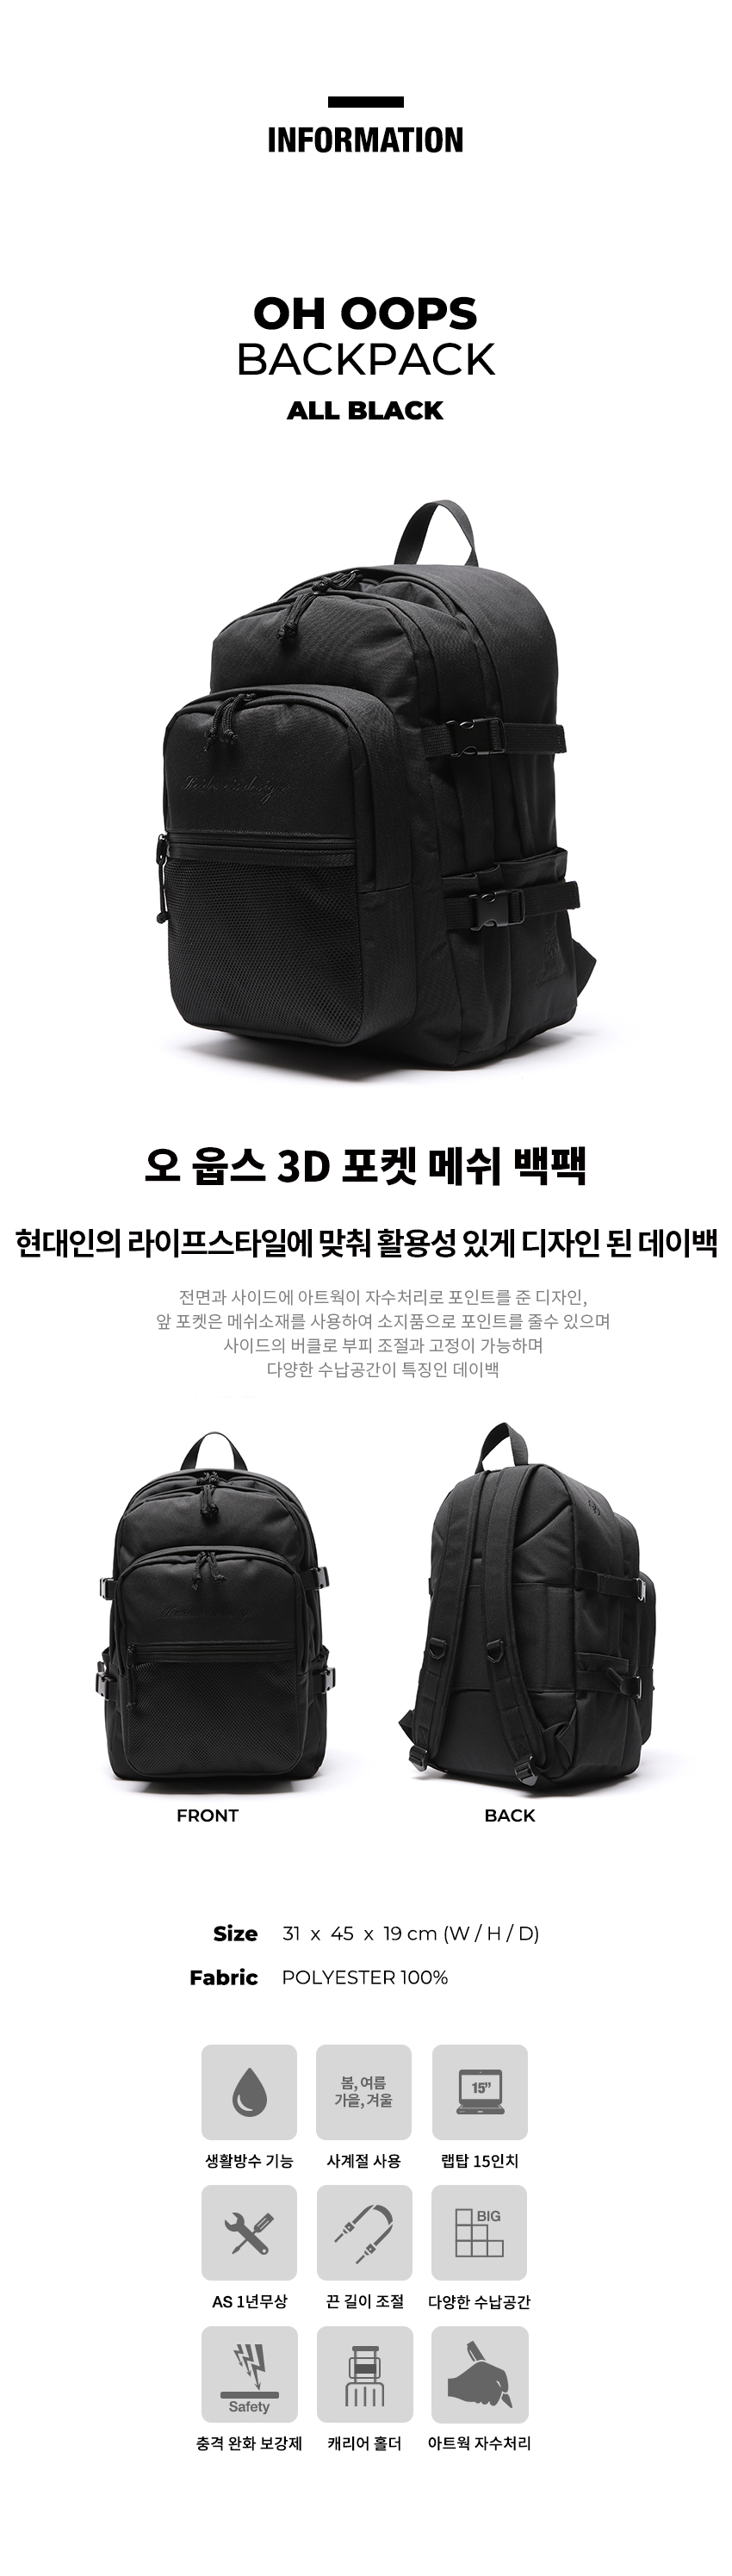 ROIDESROIS - OH OOPS BACKPACK (ALL BLACK) - 로아드로아, 89,000원, 백팩, 패브릭백팩